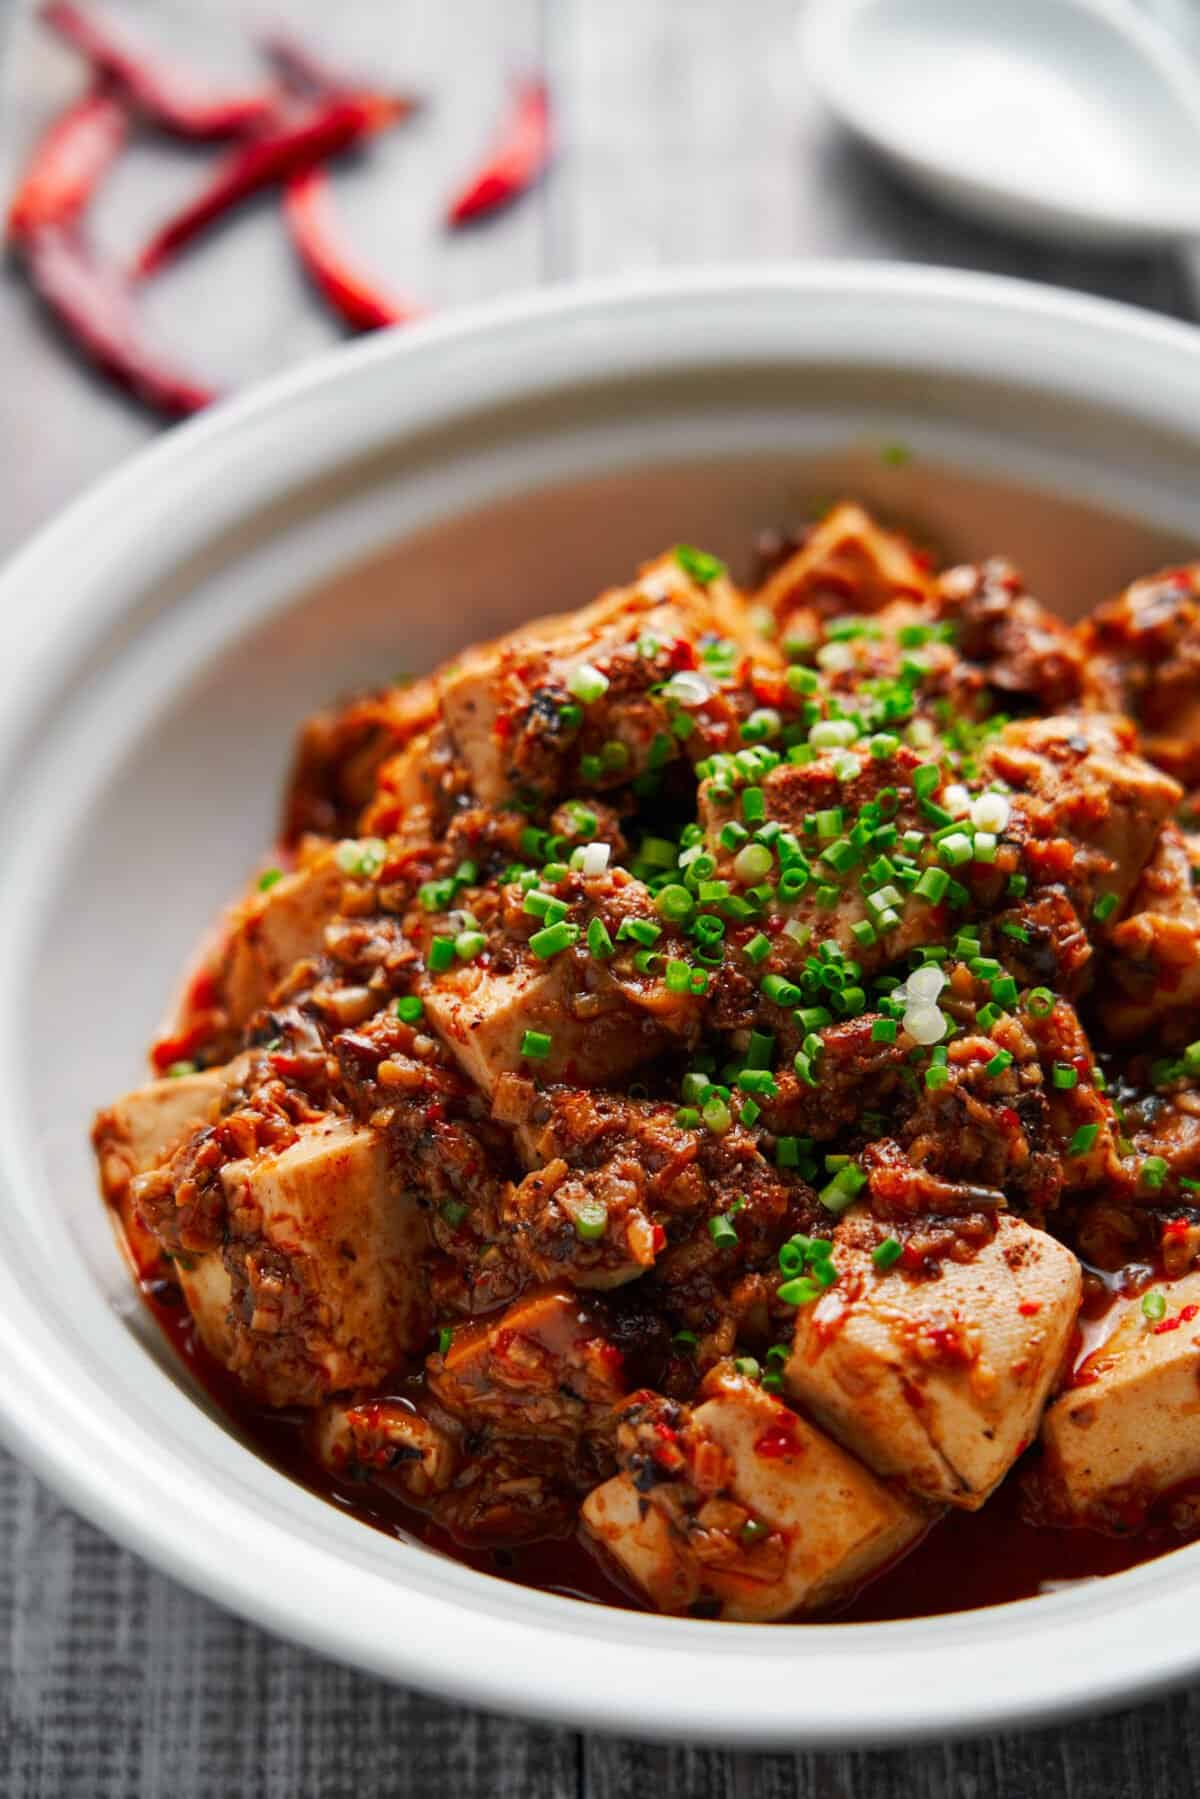 Spicy, flavorful, and satisfying, this plant-based Mapo Tofu includes a medley of ground mushrooms that give this Sichuan classic a meaty texture and flavor.